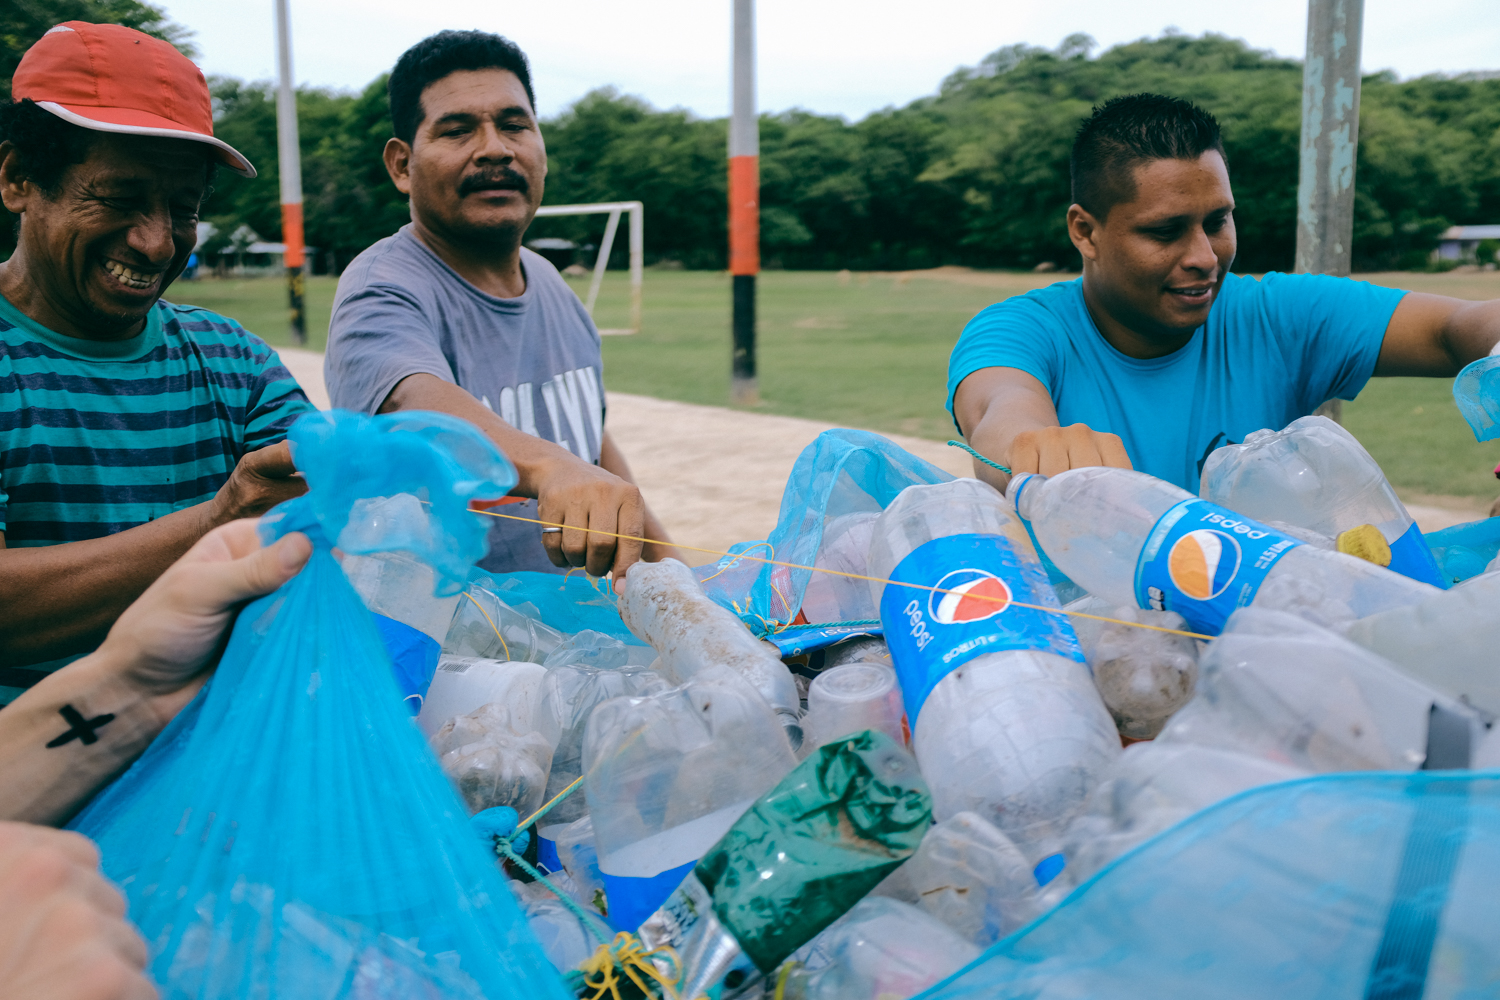 We receive the plastic bottles on our monthly events in the Comunidad Virgen Morena.